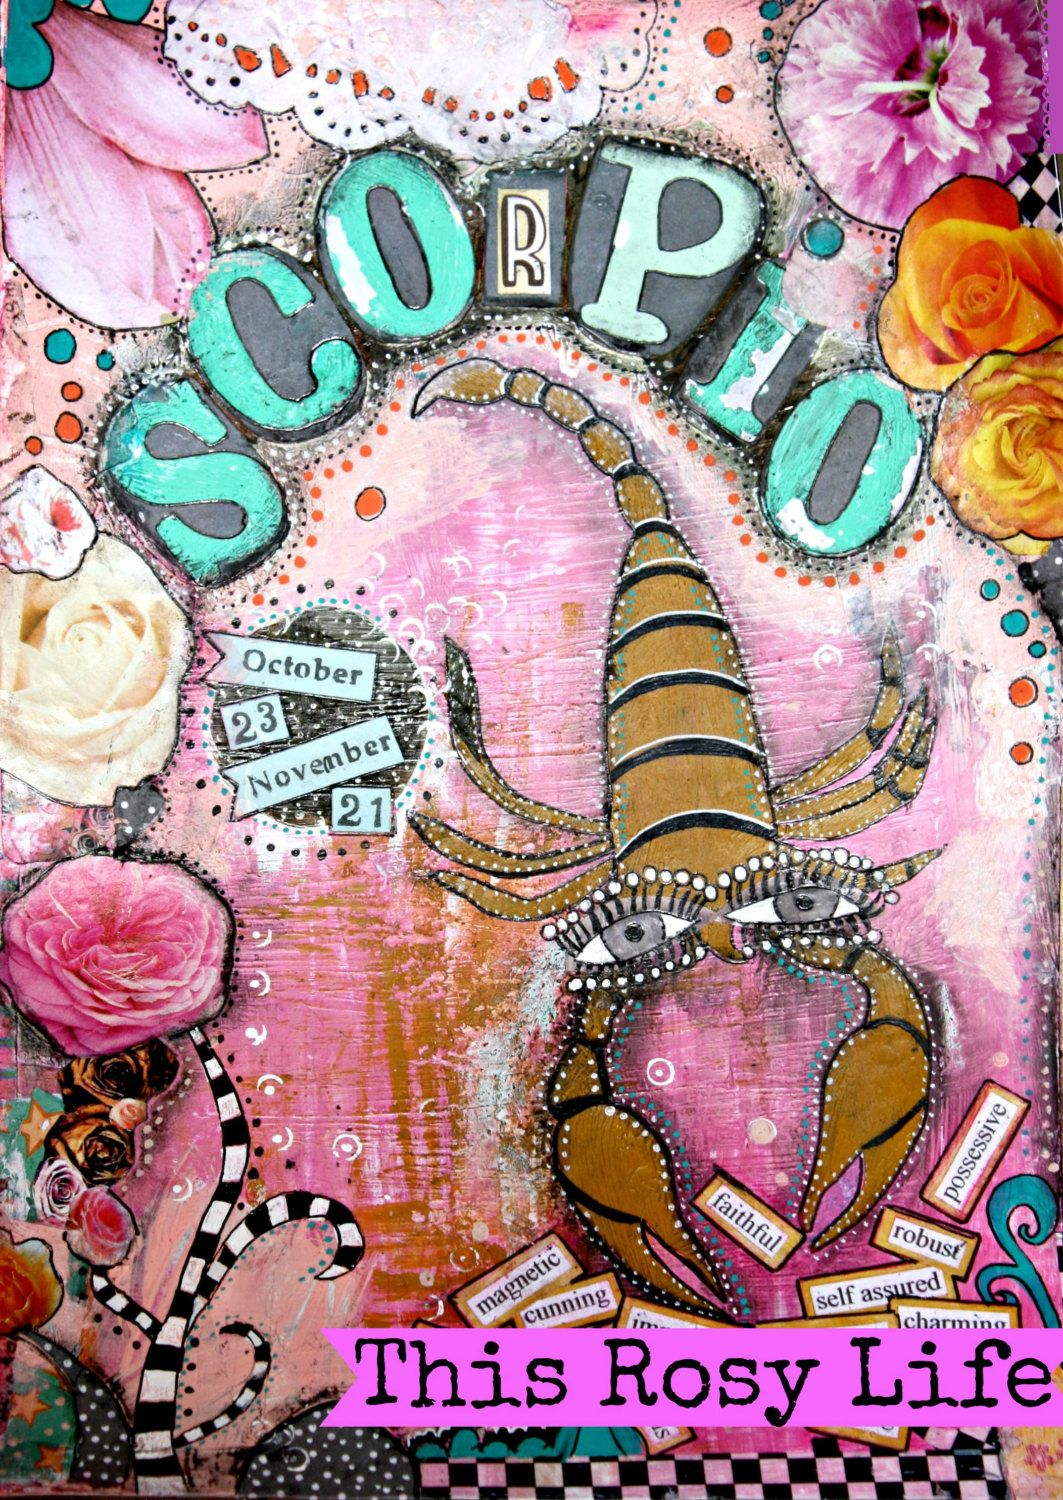 Scorpio art, Scorpio art print, Scorpio gift, astrology art. by ThisRosyLife on Etsy